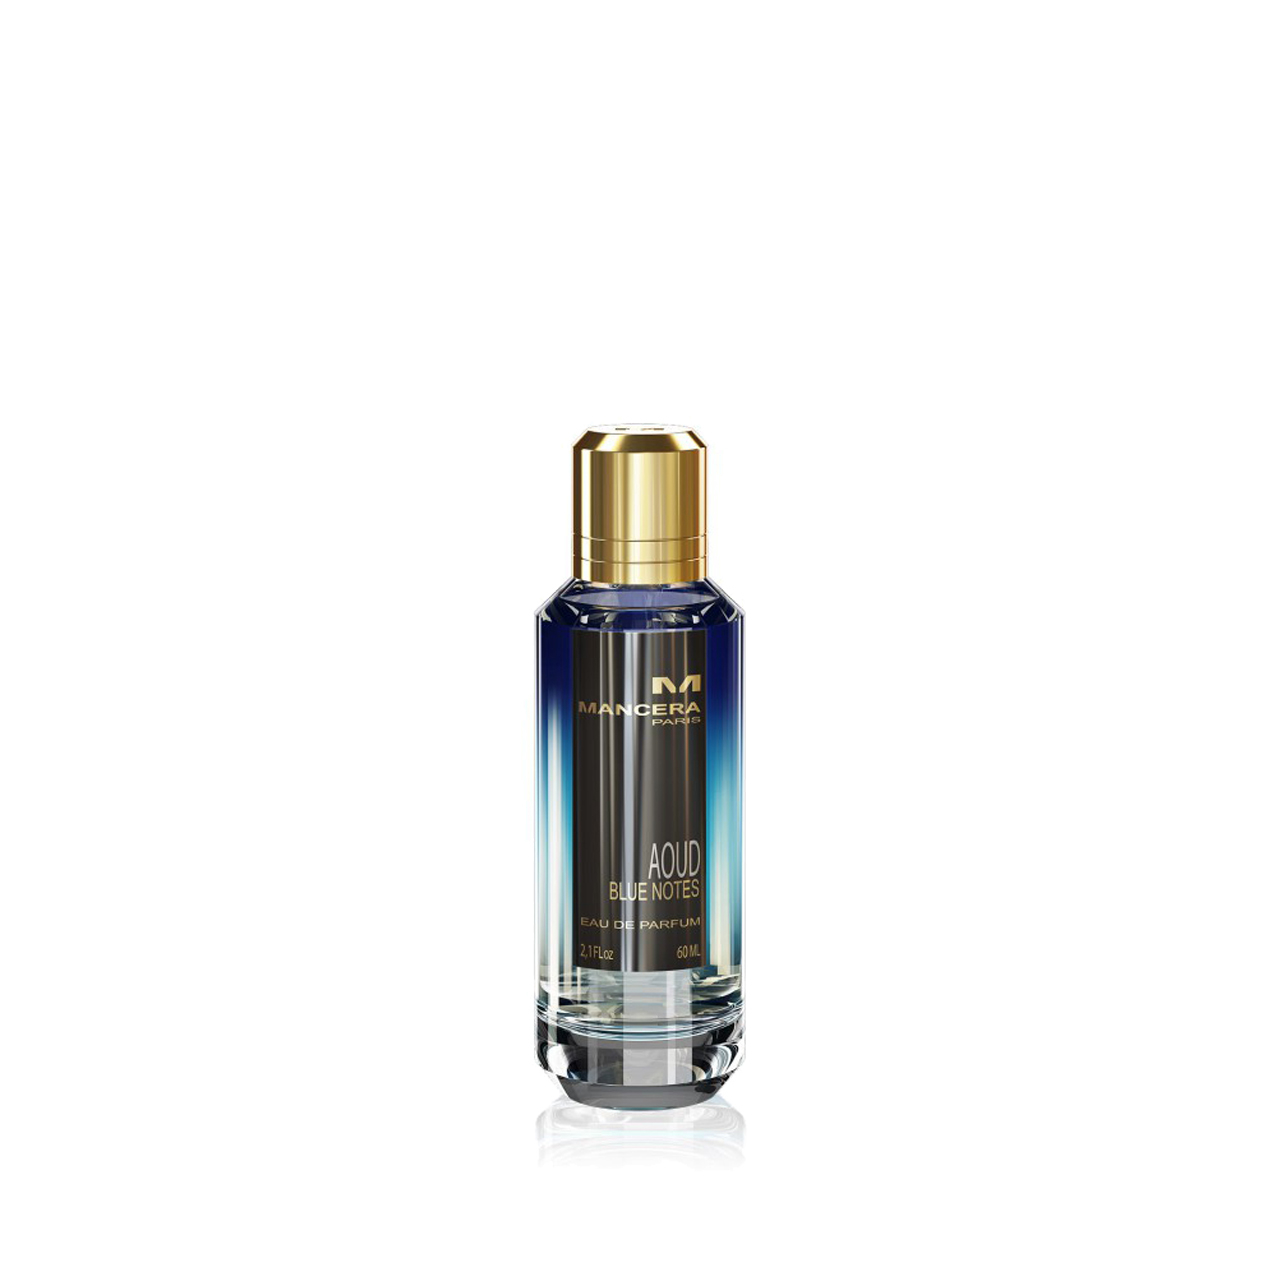 Aoud Blue Notes - Eau de Parfum